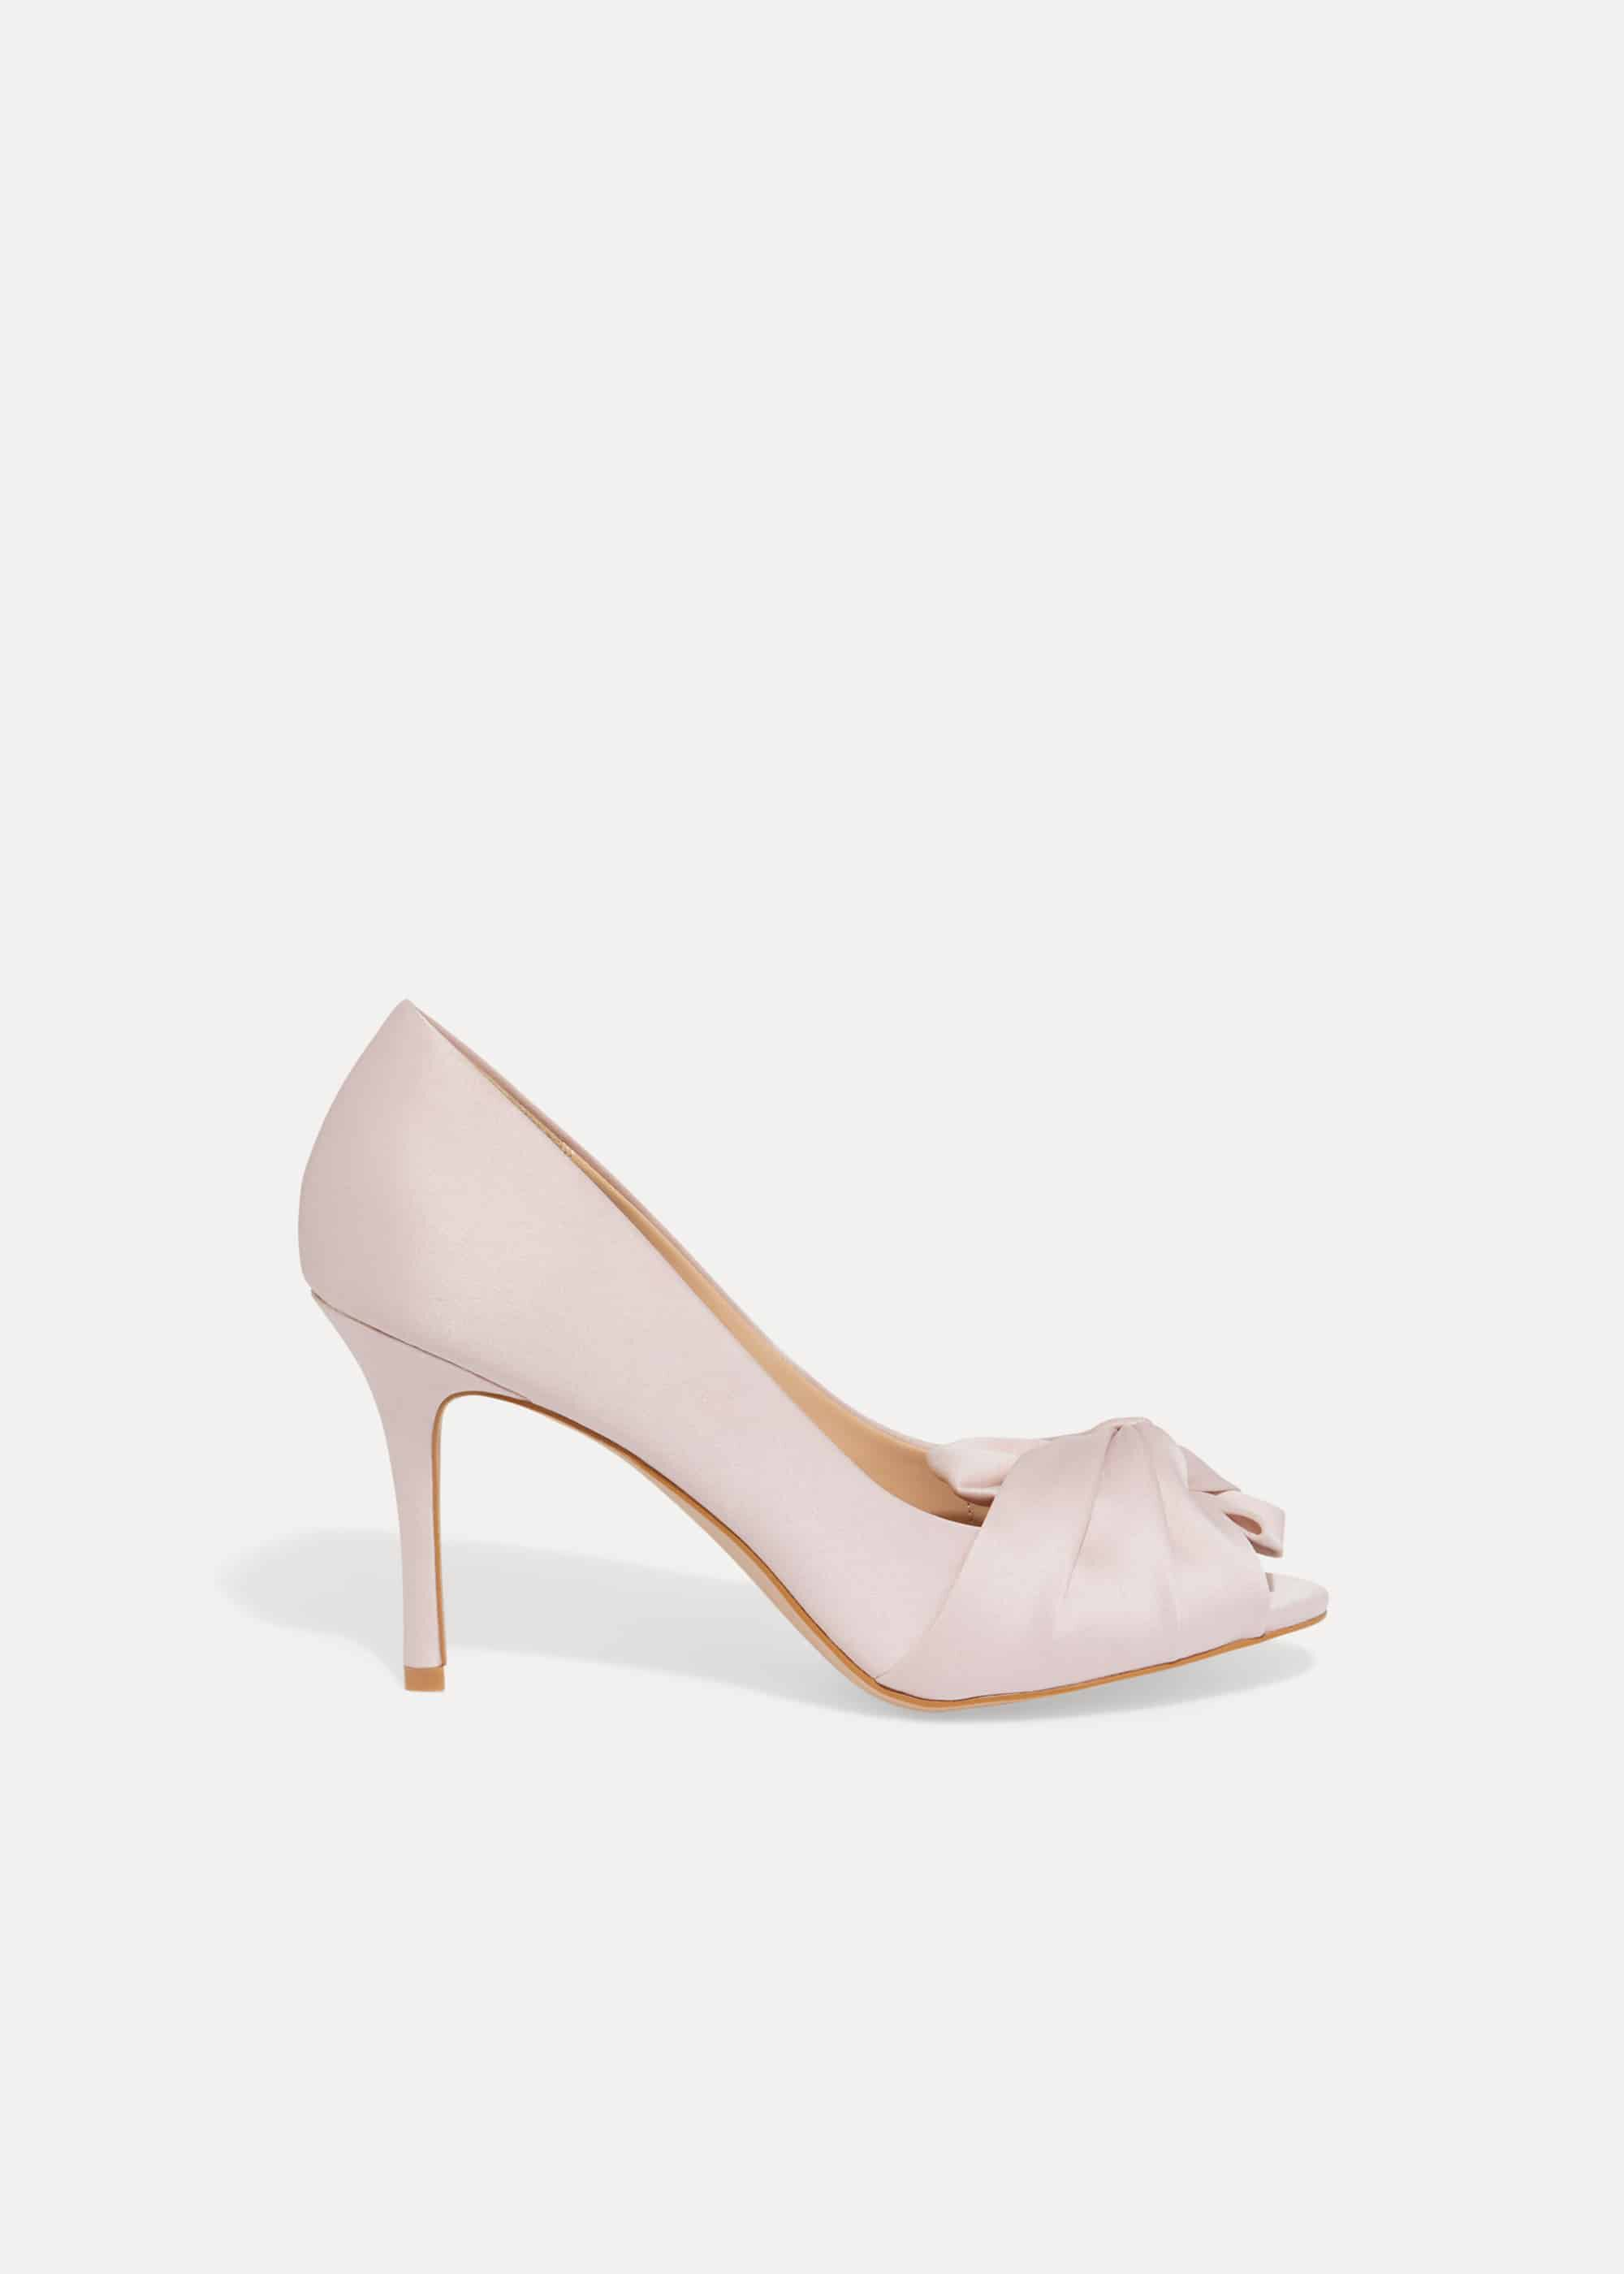 Phase Eight Alice Bow Peep Toe Shoes, Pink, Sandals